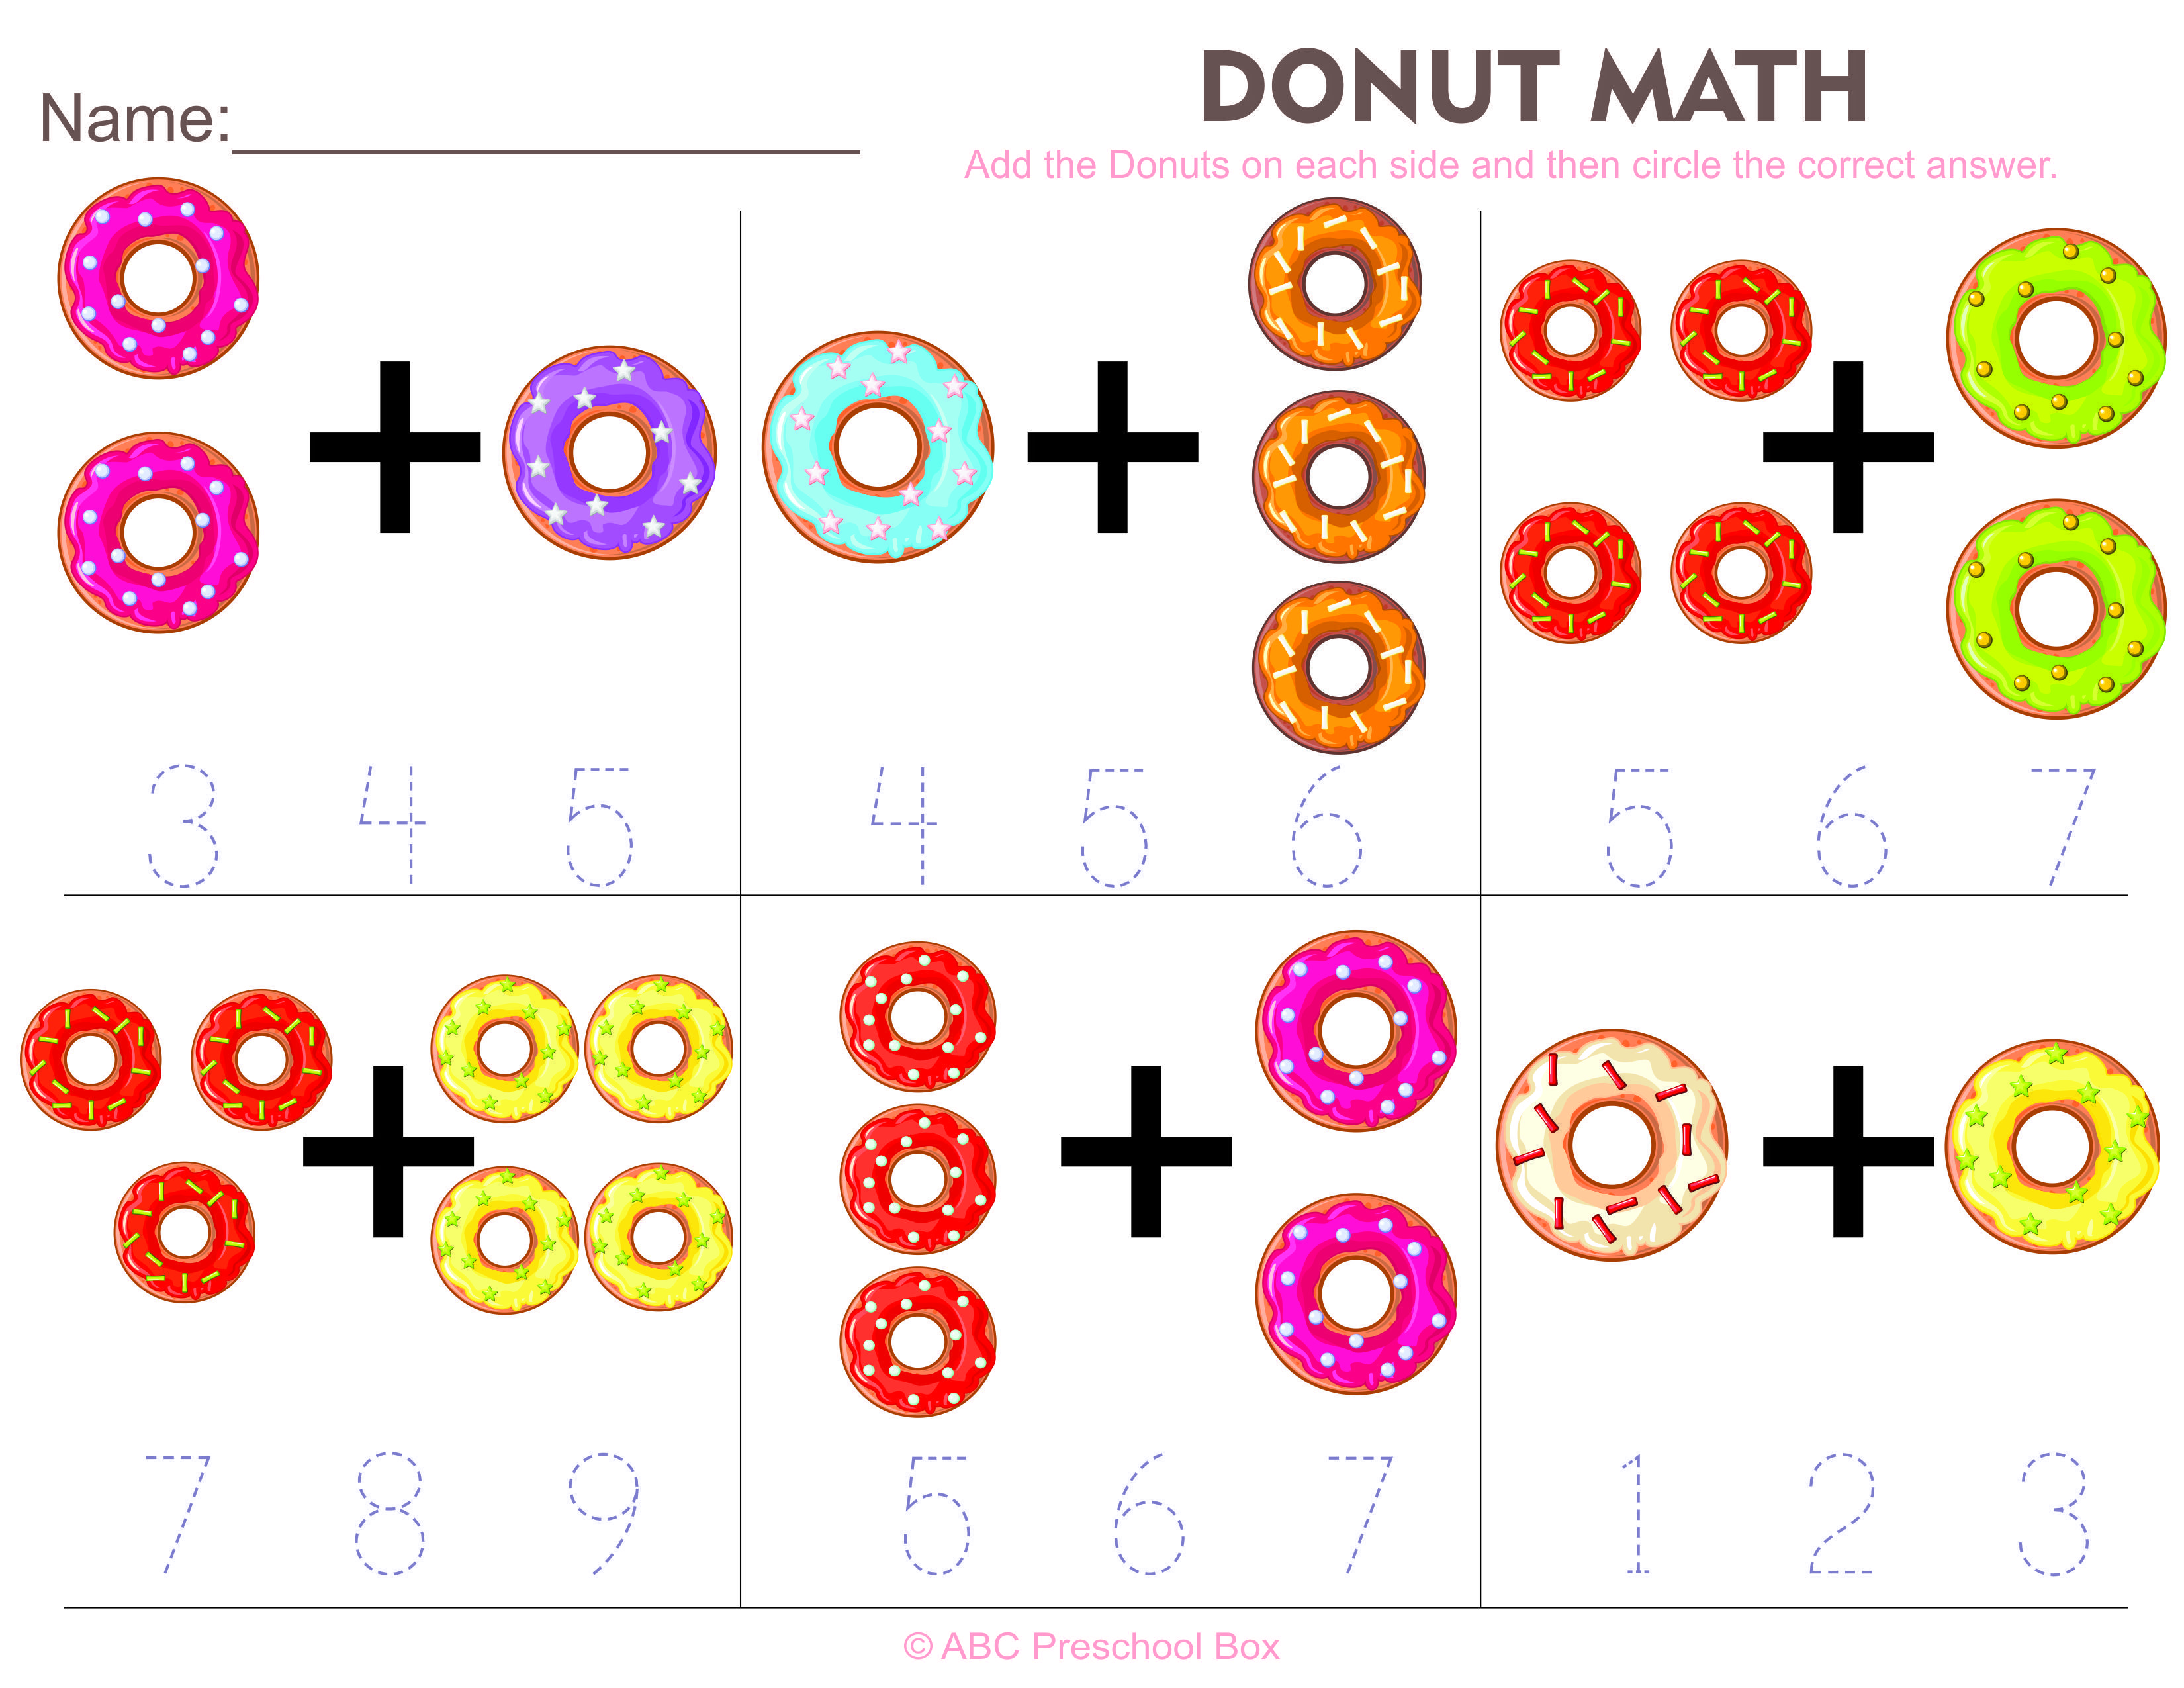 donut math preschool worksheet from abcpreschoolbox.com